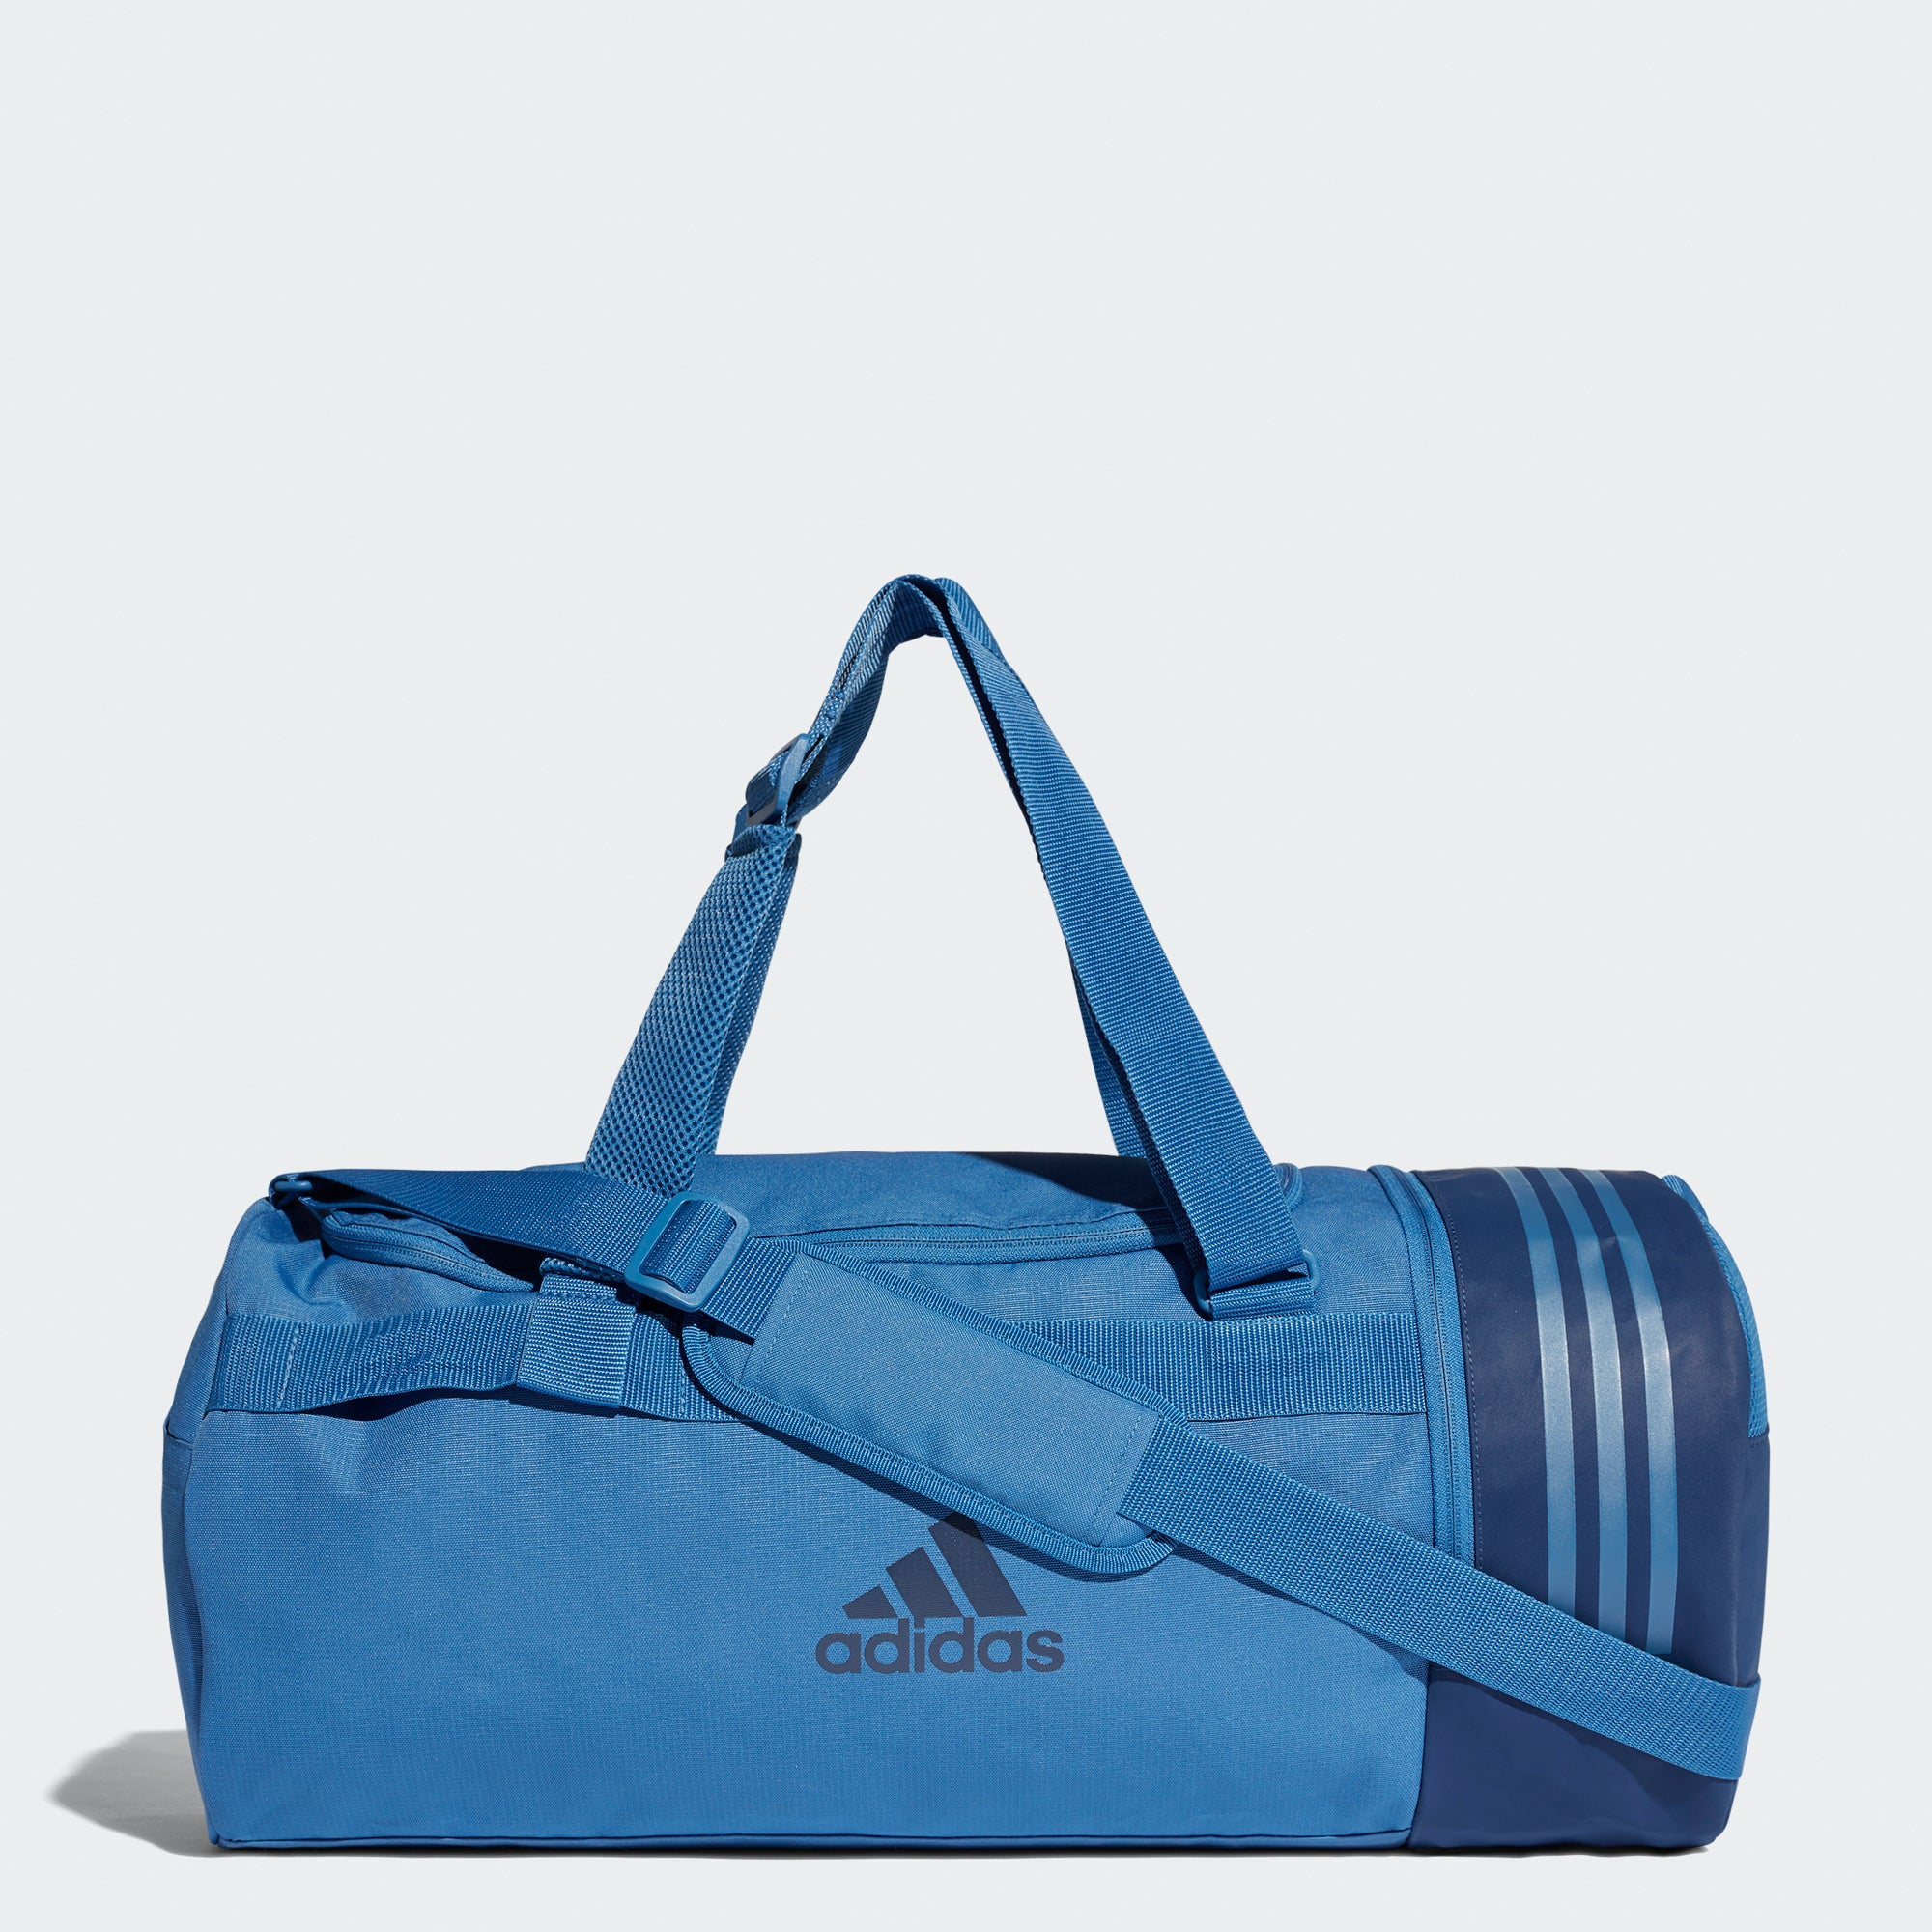 11d95fc3456 Buy adidas Convertible 3-Stripes Duffel Bag, Blue Online in Singapore |  Royal Sporting House